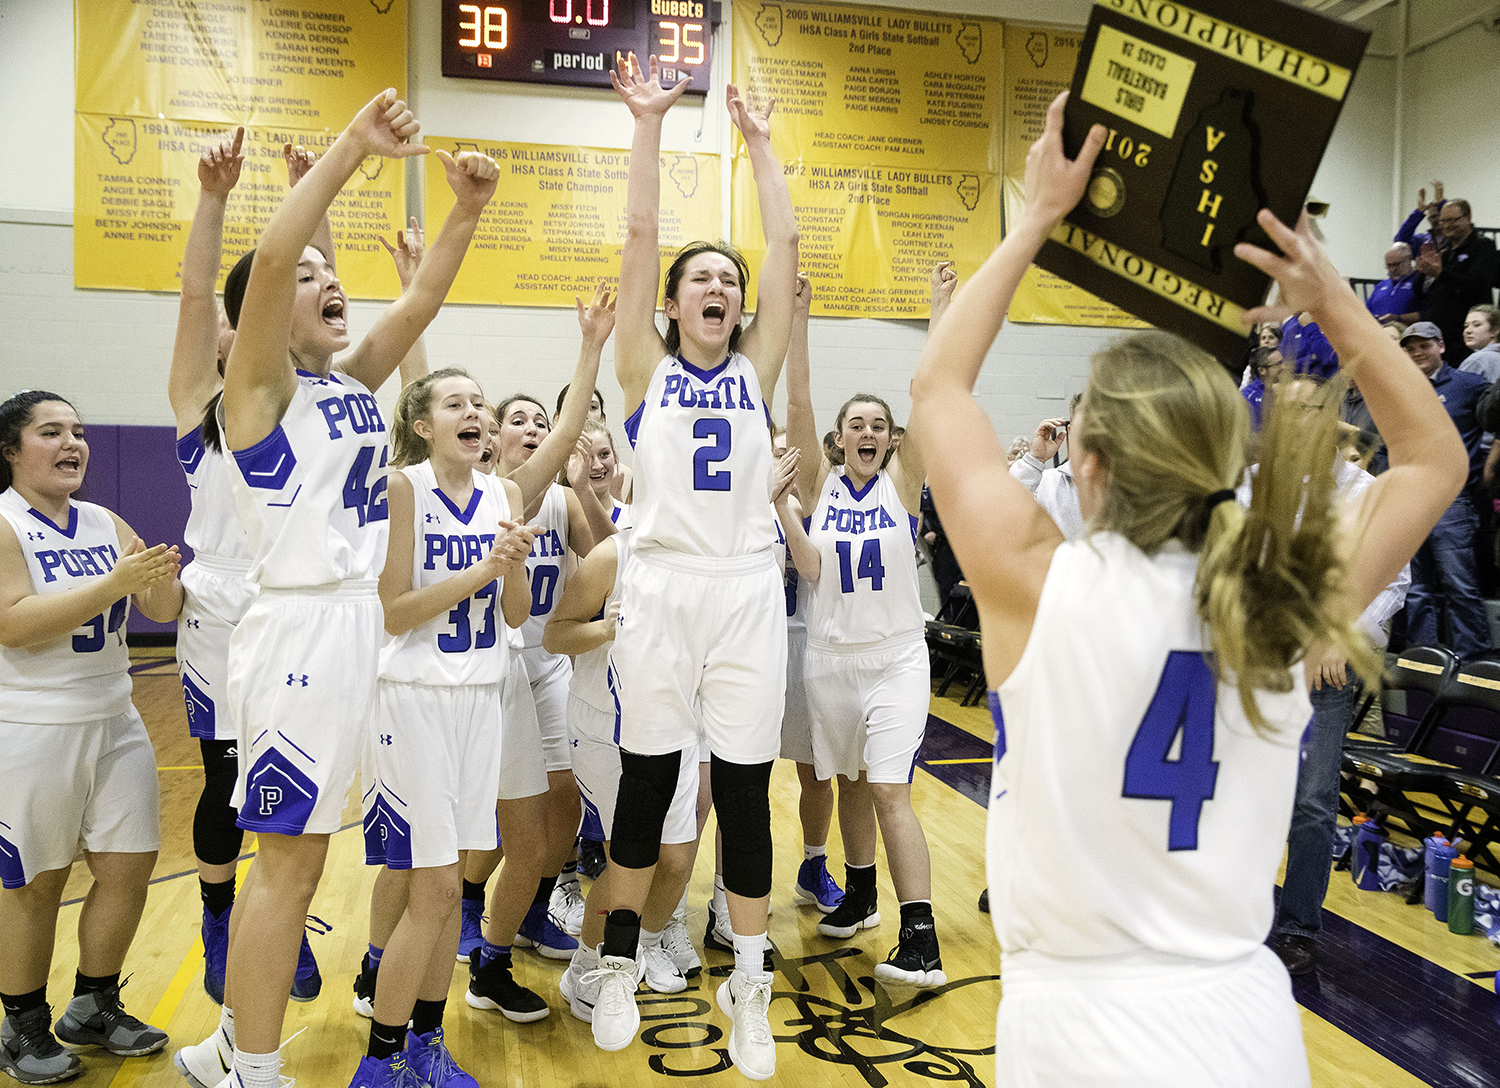 The PORTA Blue Jays celebrate as Taylor Danner brings the regional championship plaque over after they defeated Williamsville 38-35 during the 2A Williamsville Regional Thursday, February 7, 2019. [Ted Schurter/The State Journal-Register]